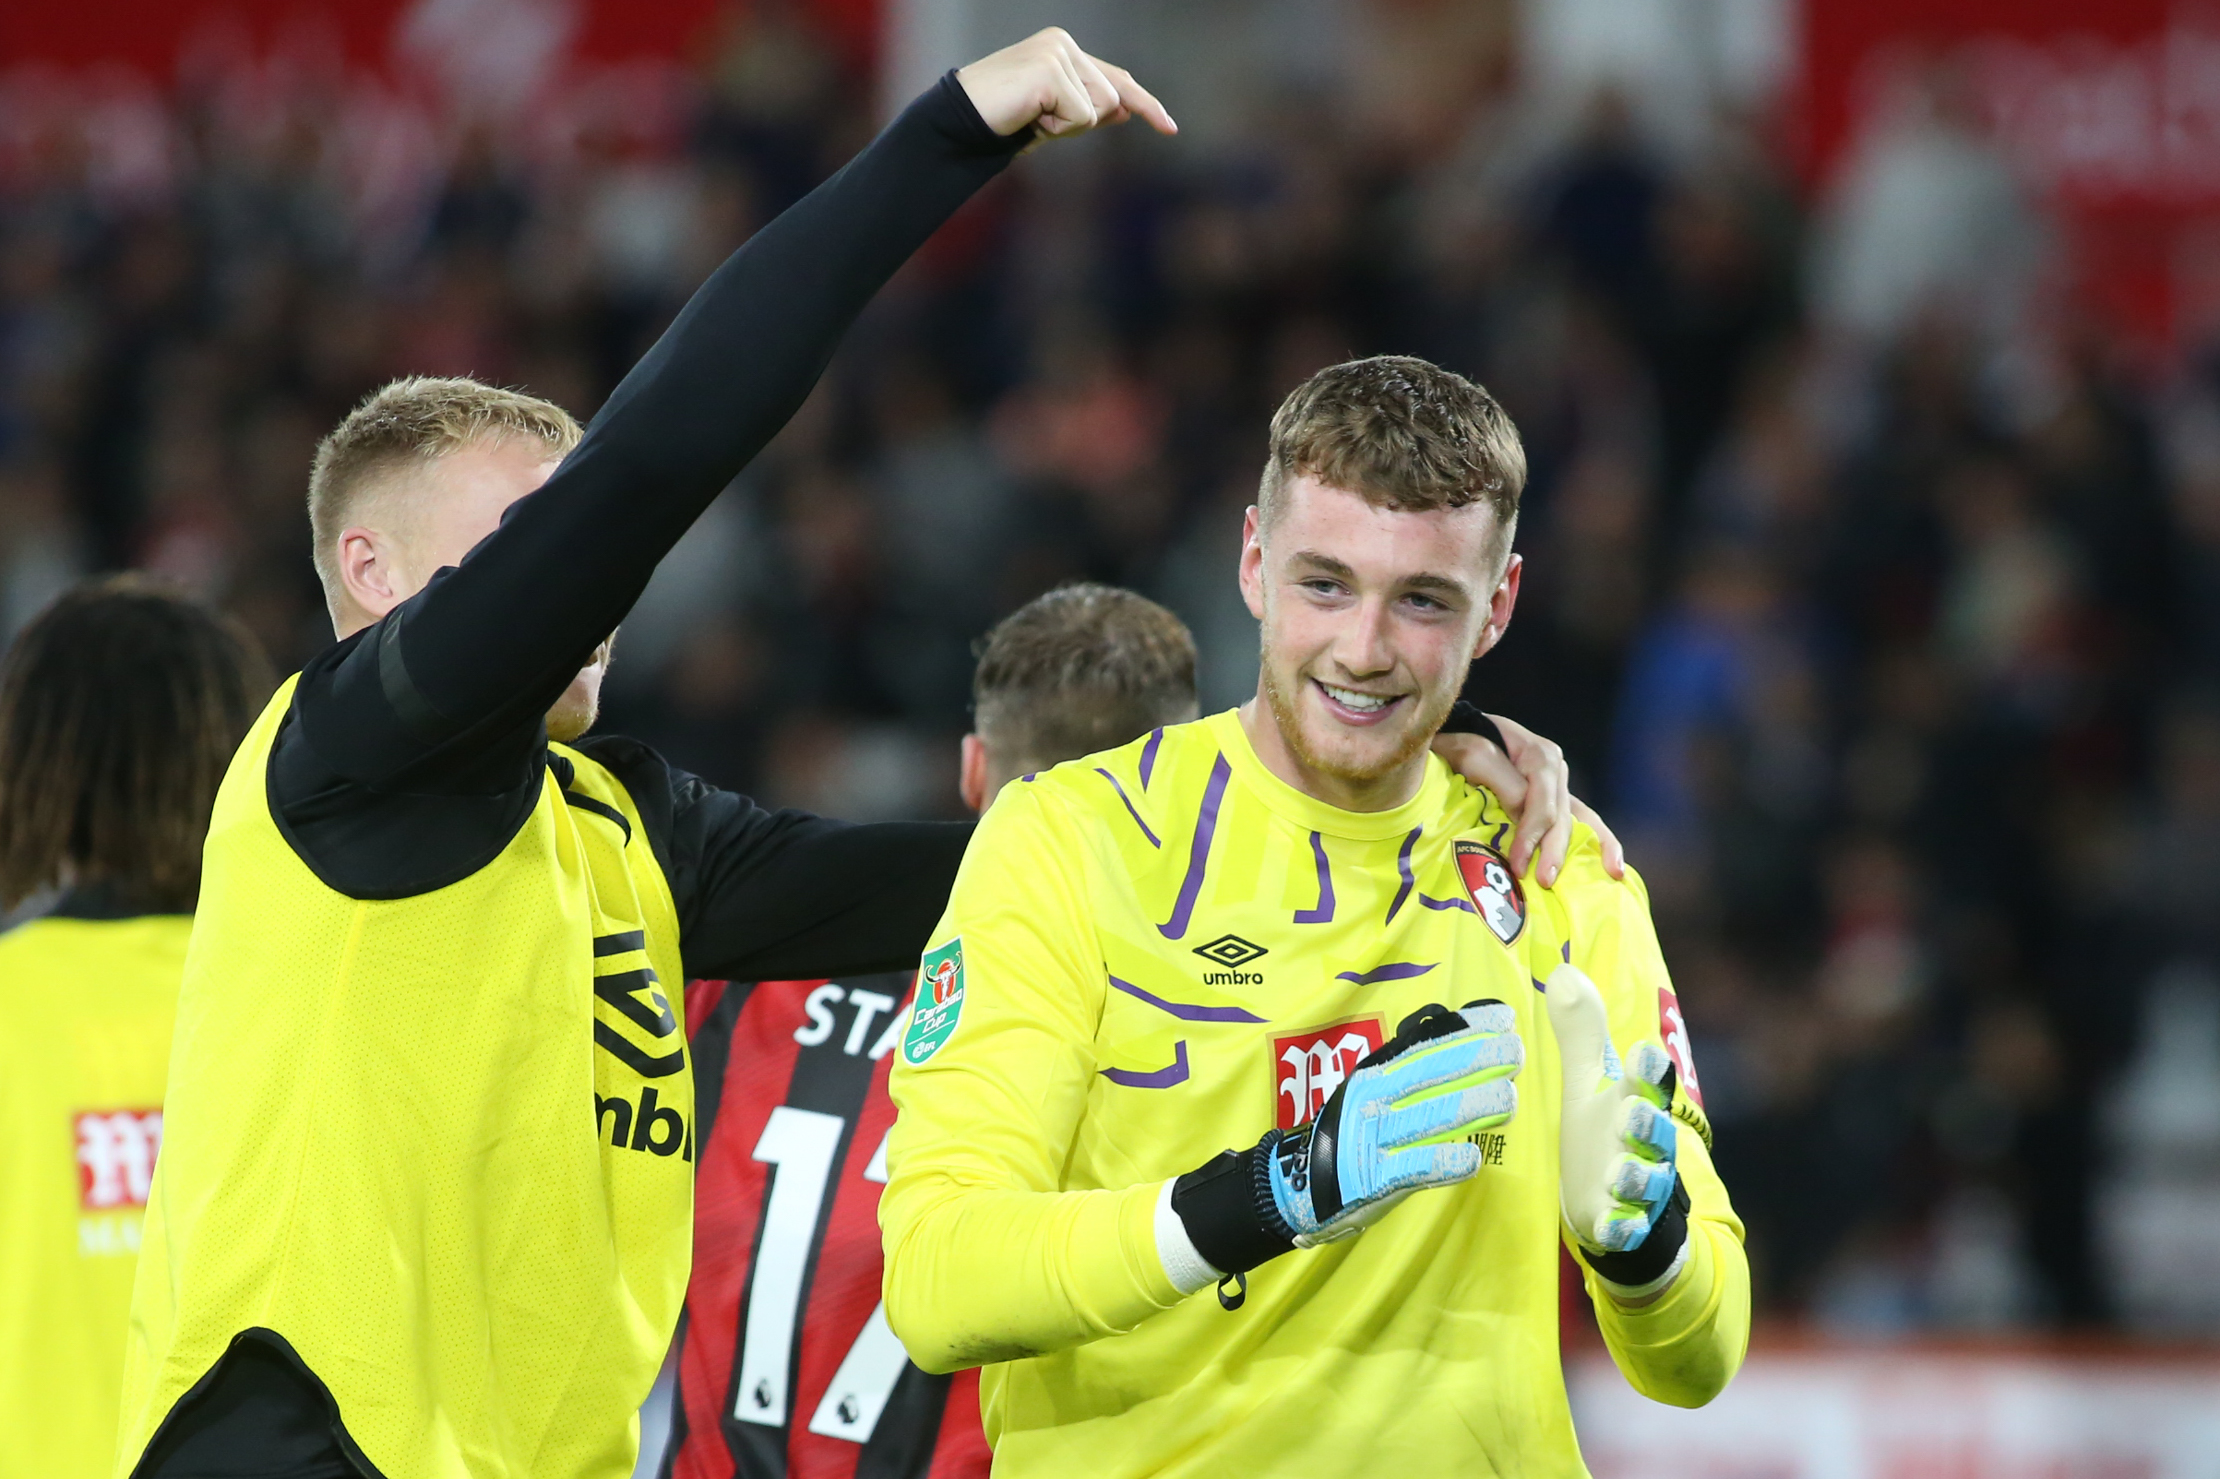 'It's really good to see that goalkeeping unit pushing each other' - Eddie Howe praises reaction of Mark Travers to losing Premier League spot